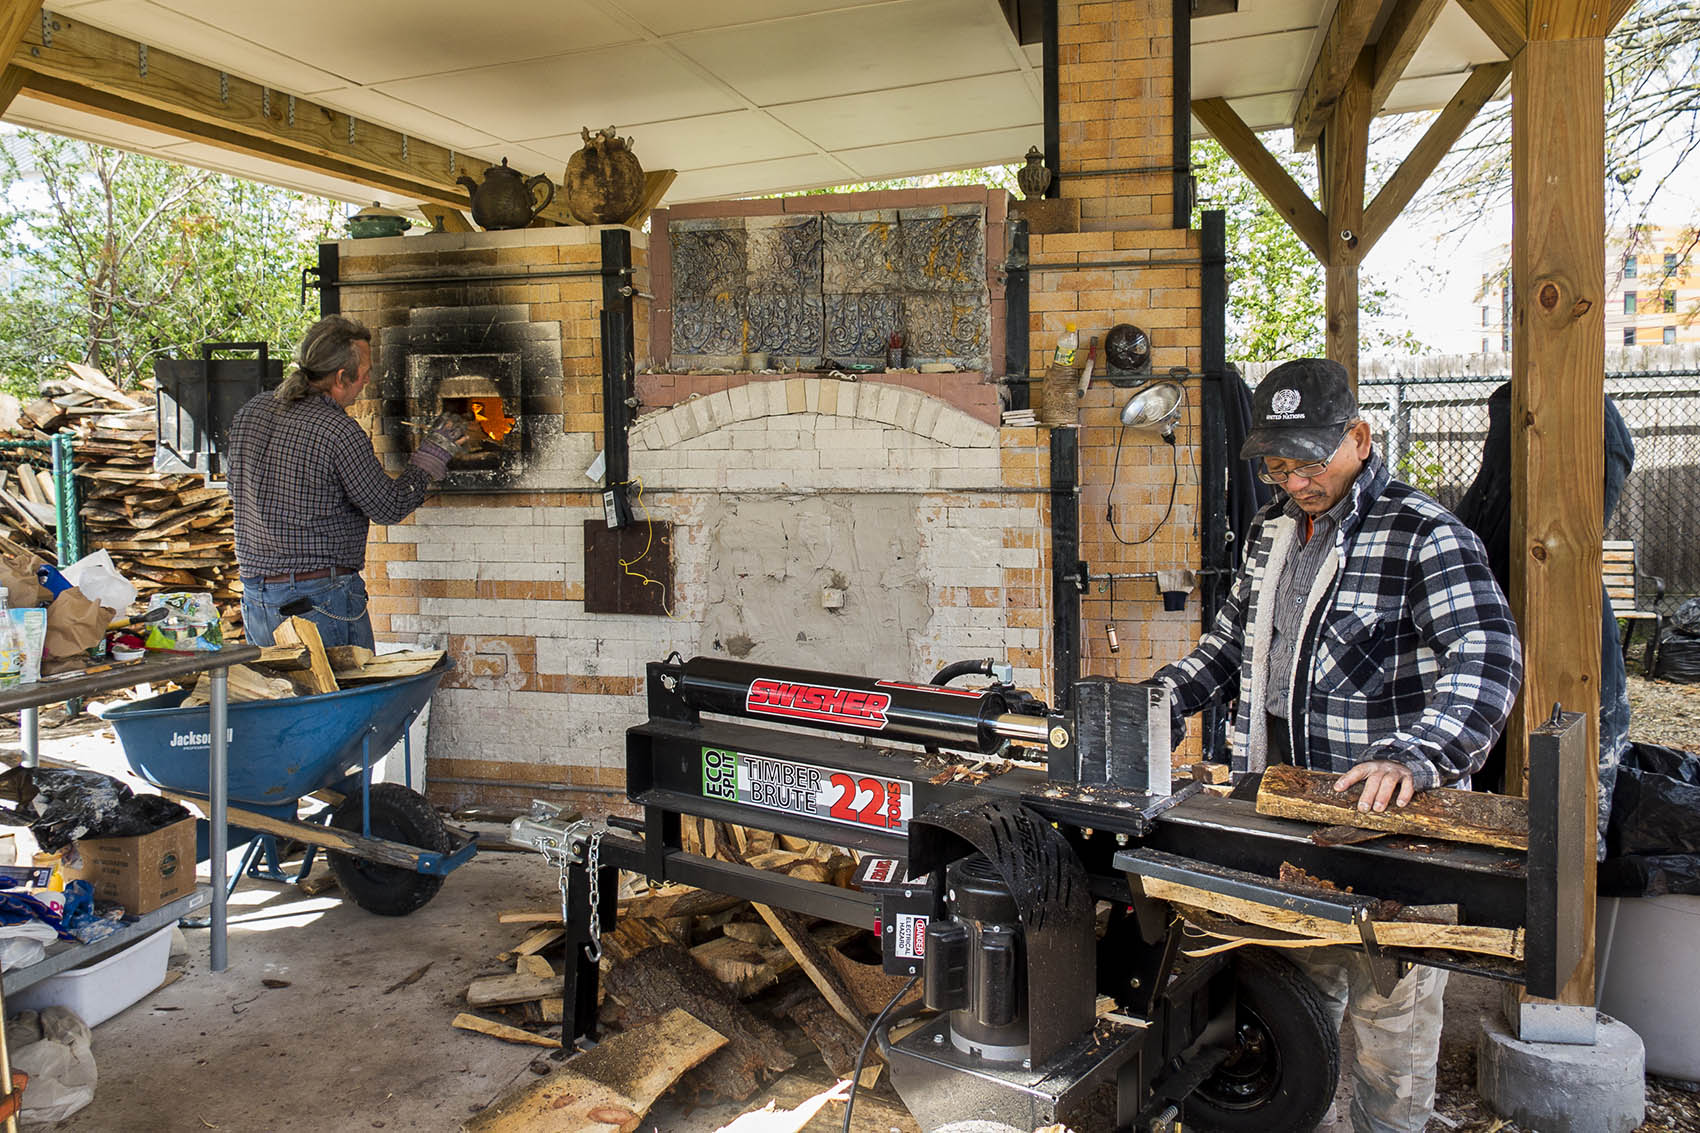 Yary Livan works at his kiln. His student John Kondra loads wood into the stone fireplace. (Andrea Shea/WBUR)